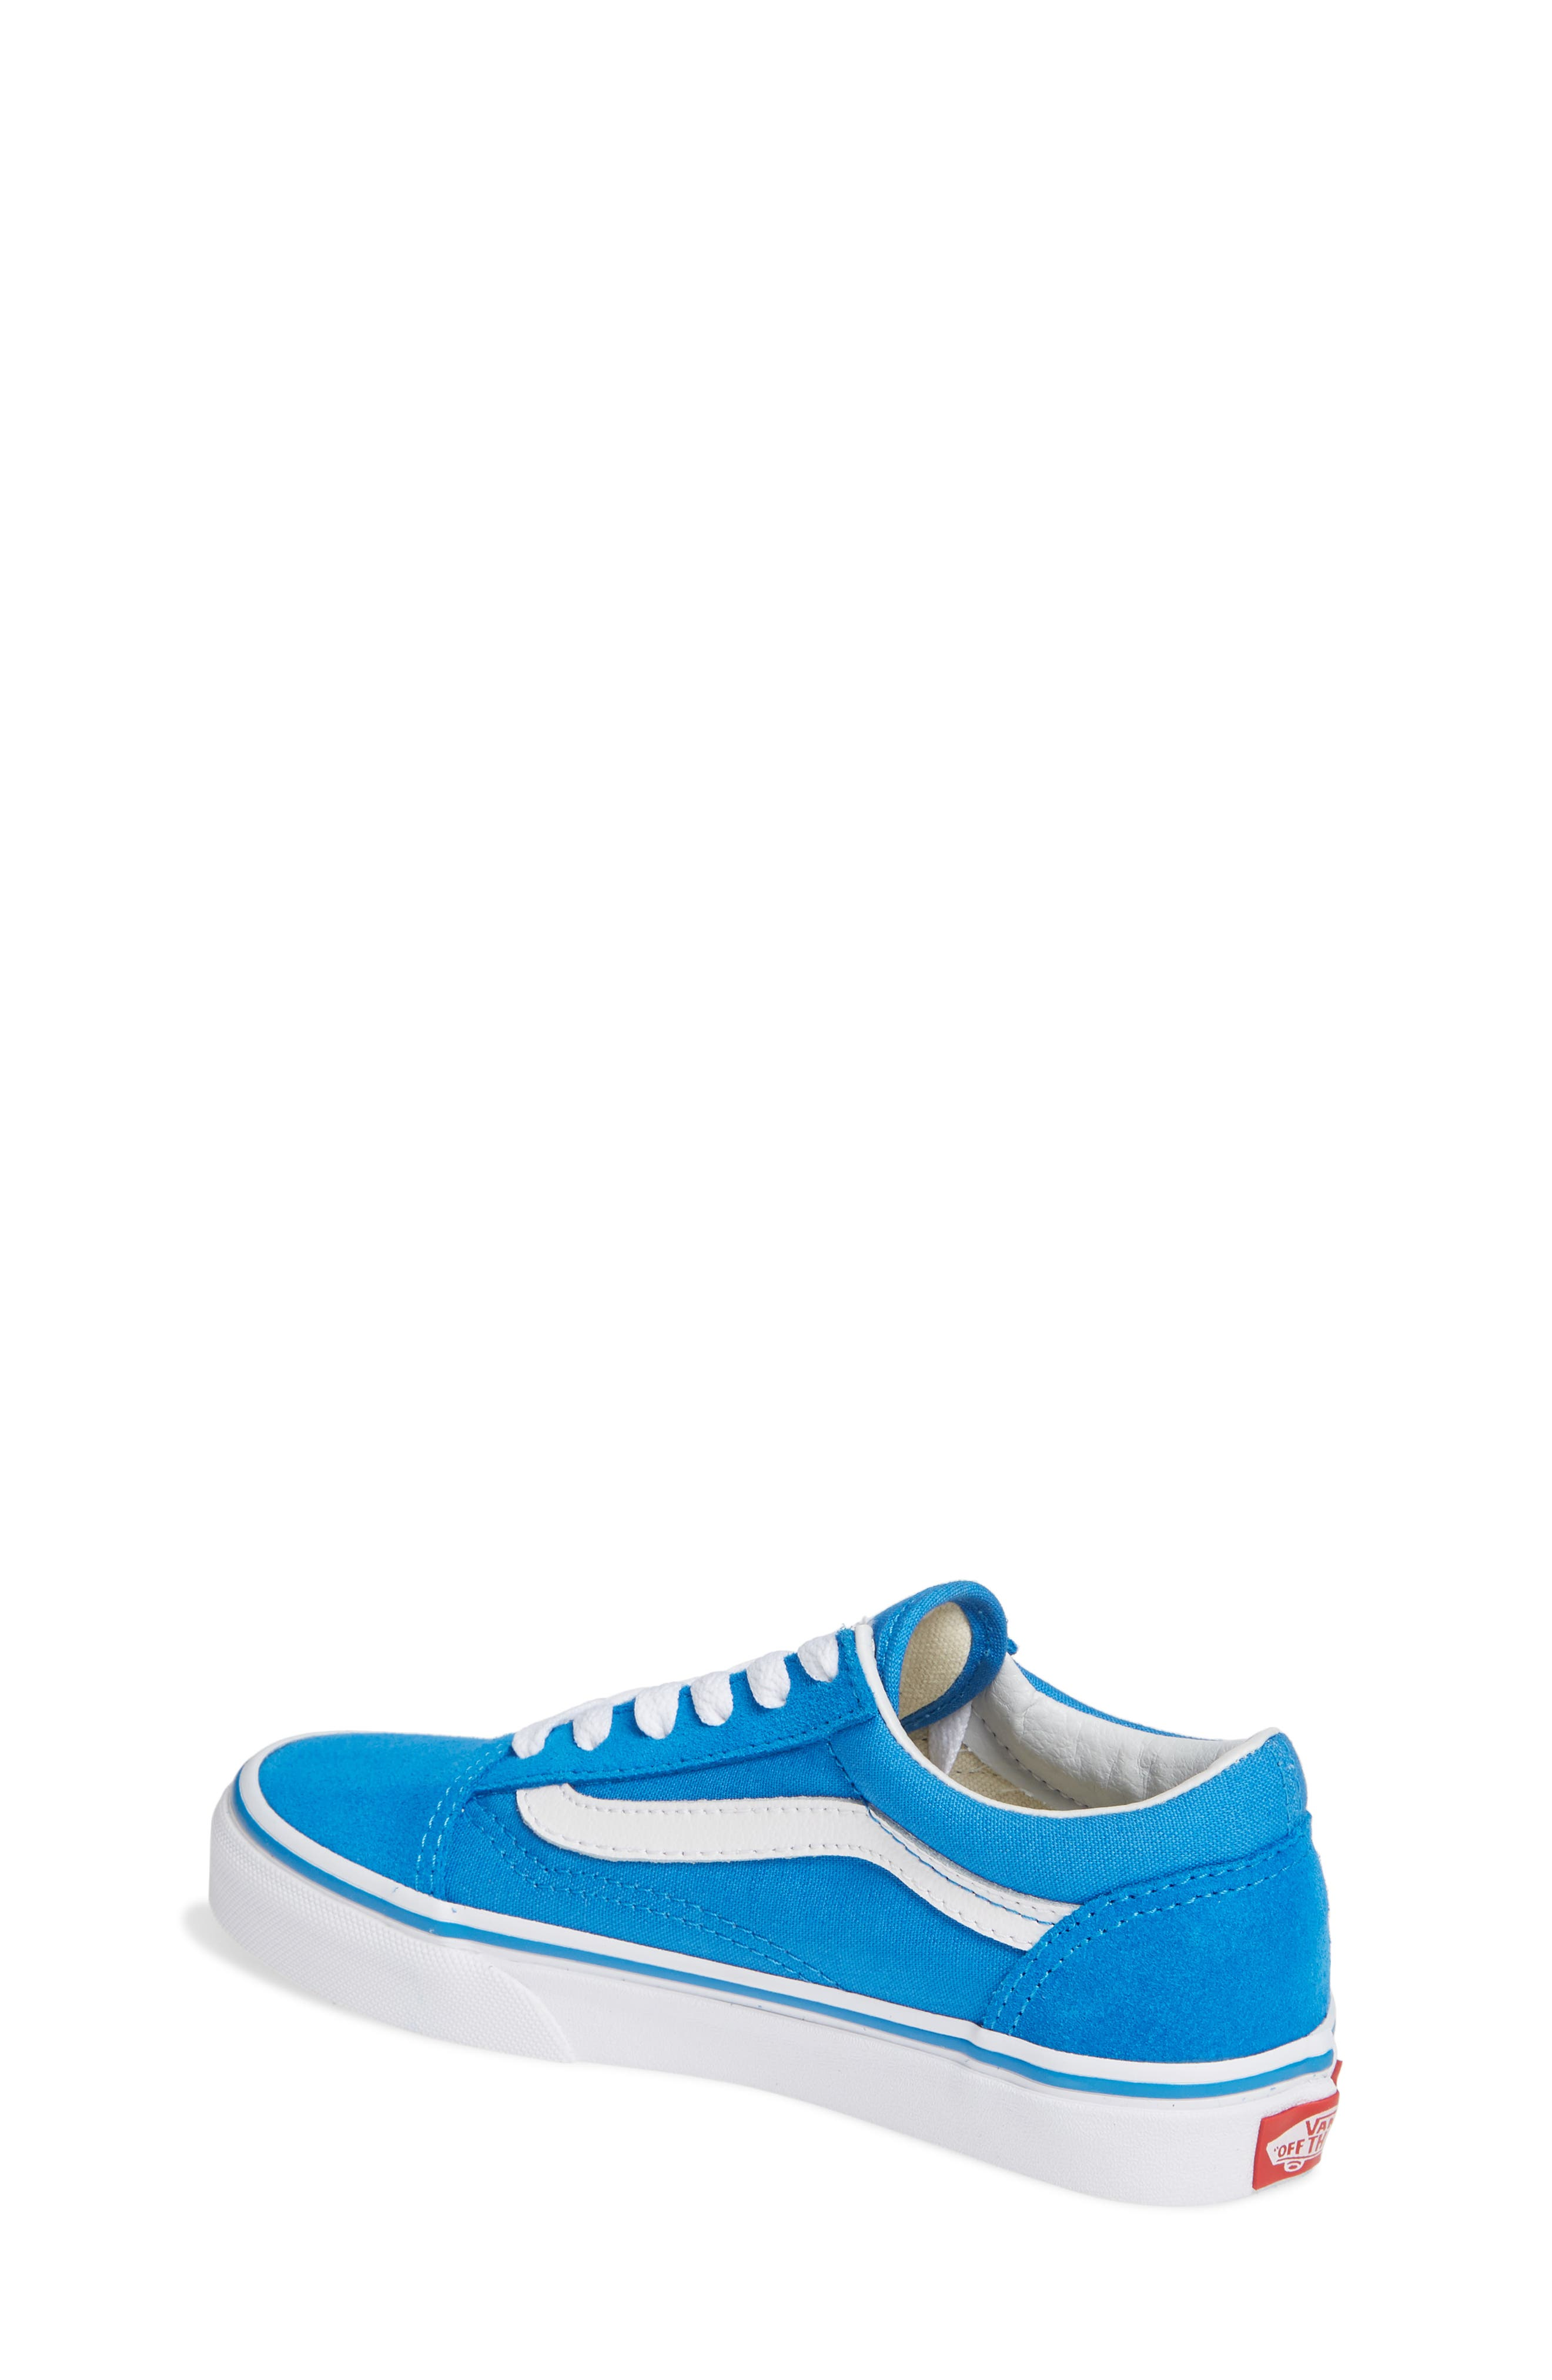 Old Skool Sneaker,                             Alternate thumbnail 2, color,                             INDIGO BUNTING/ TRUE WHITE